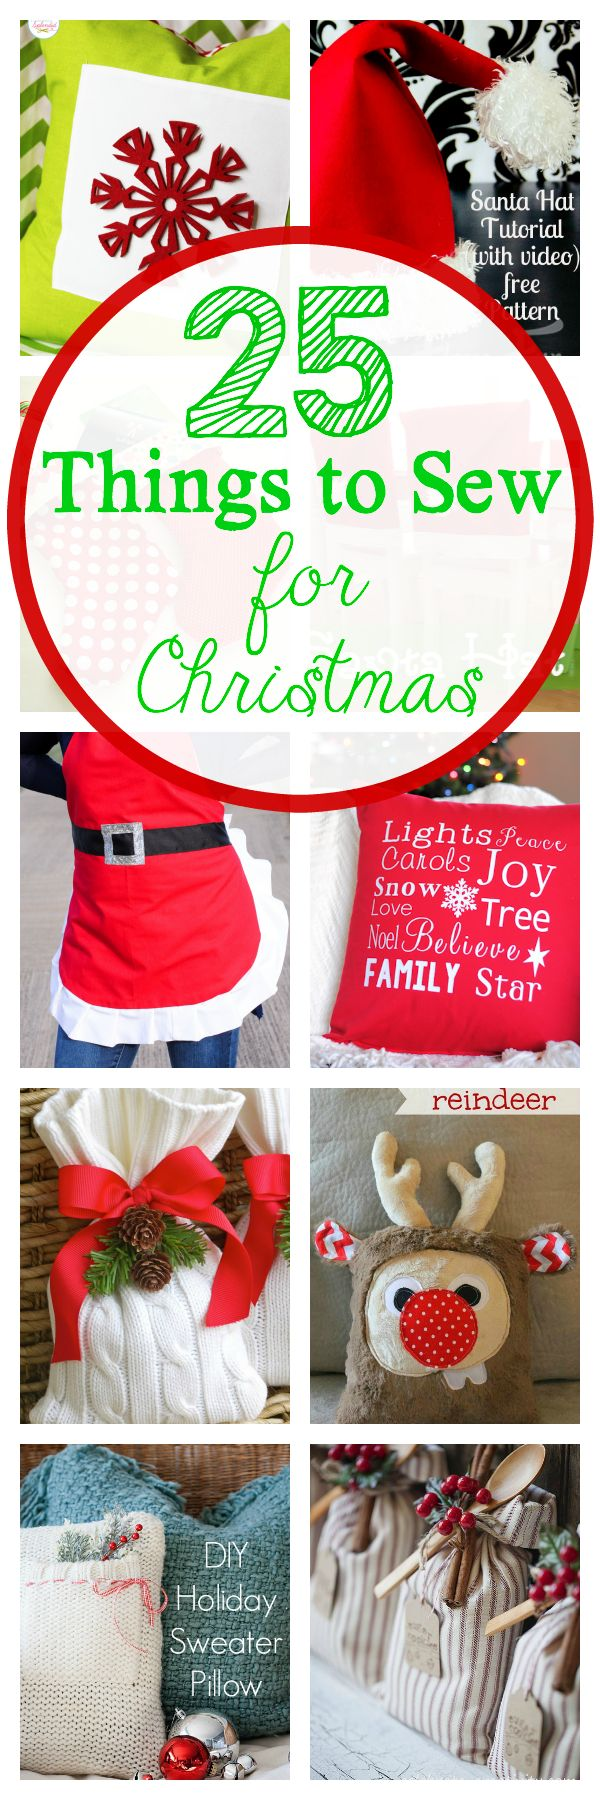 25 Things to Sew for Christmas - some cool ideas!